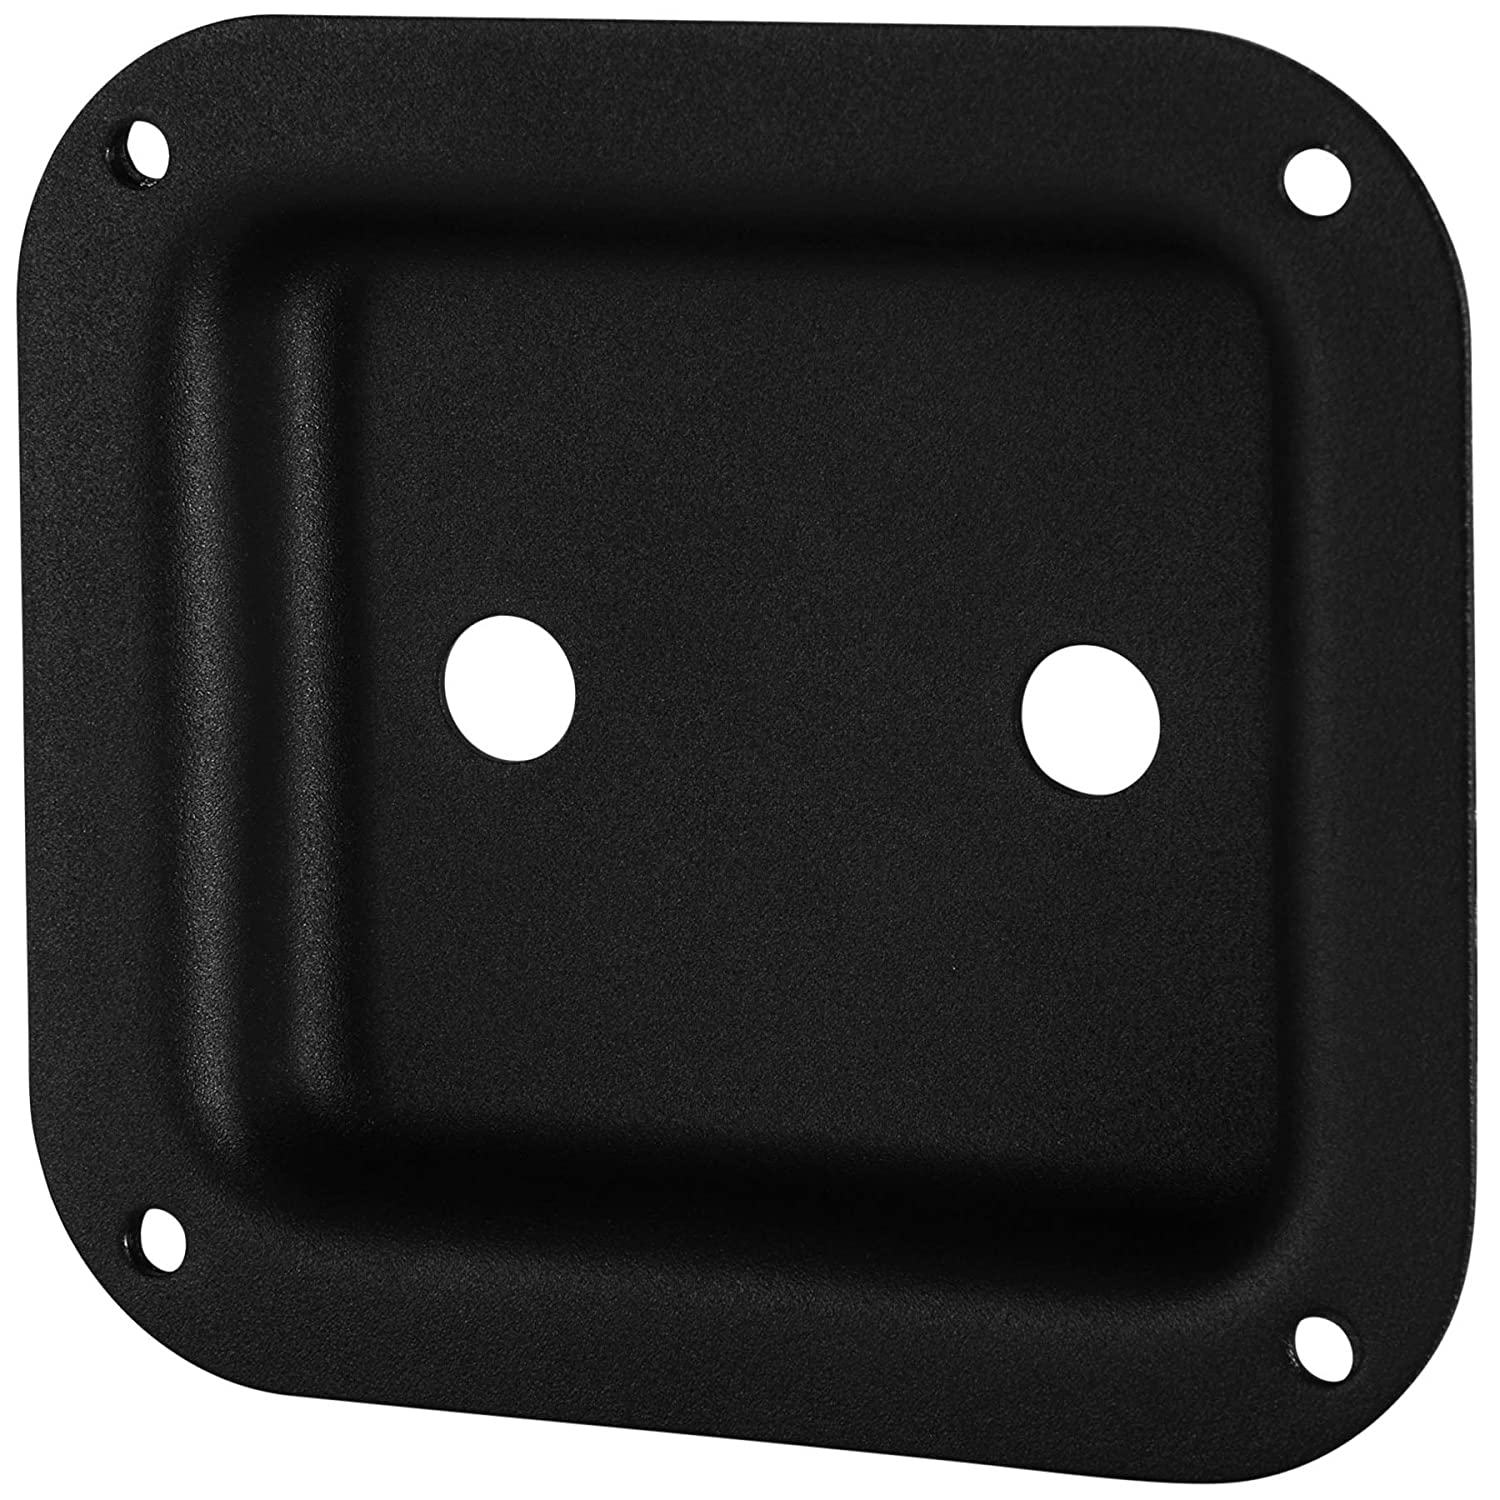 "Penn-Elcom D0938K Dish Two 1/4"" Jacks Black 4"" x 4-3/8"" 812GDjxyVcL"